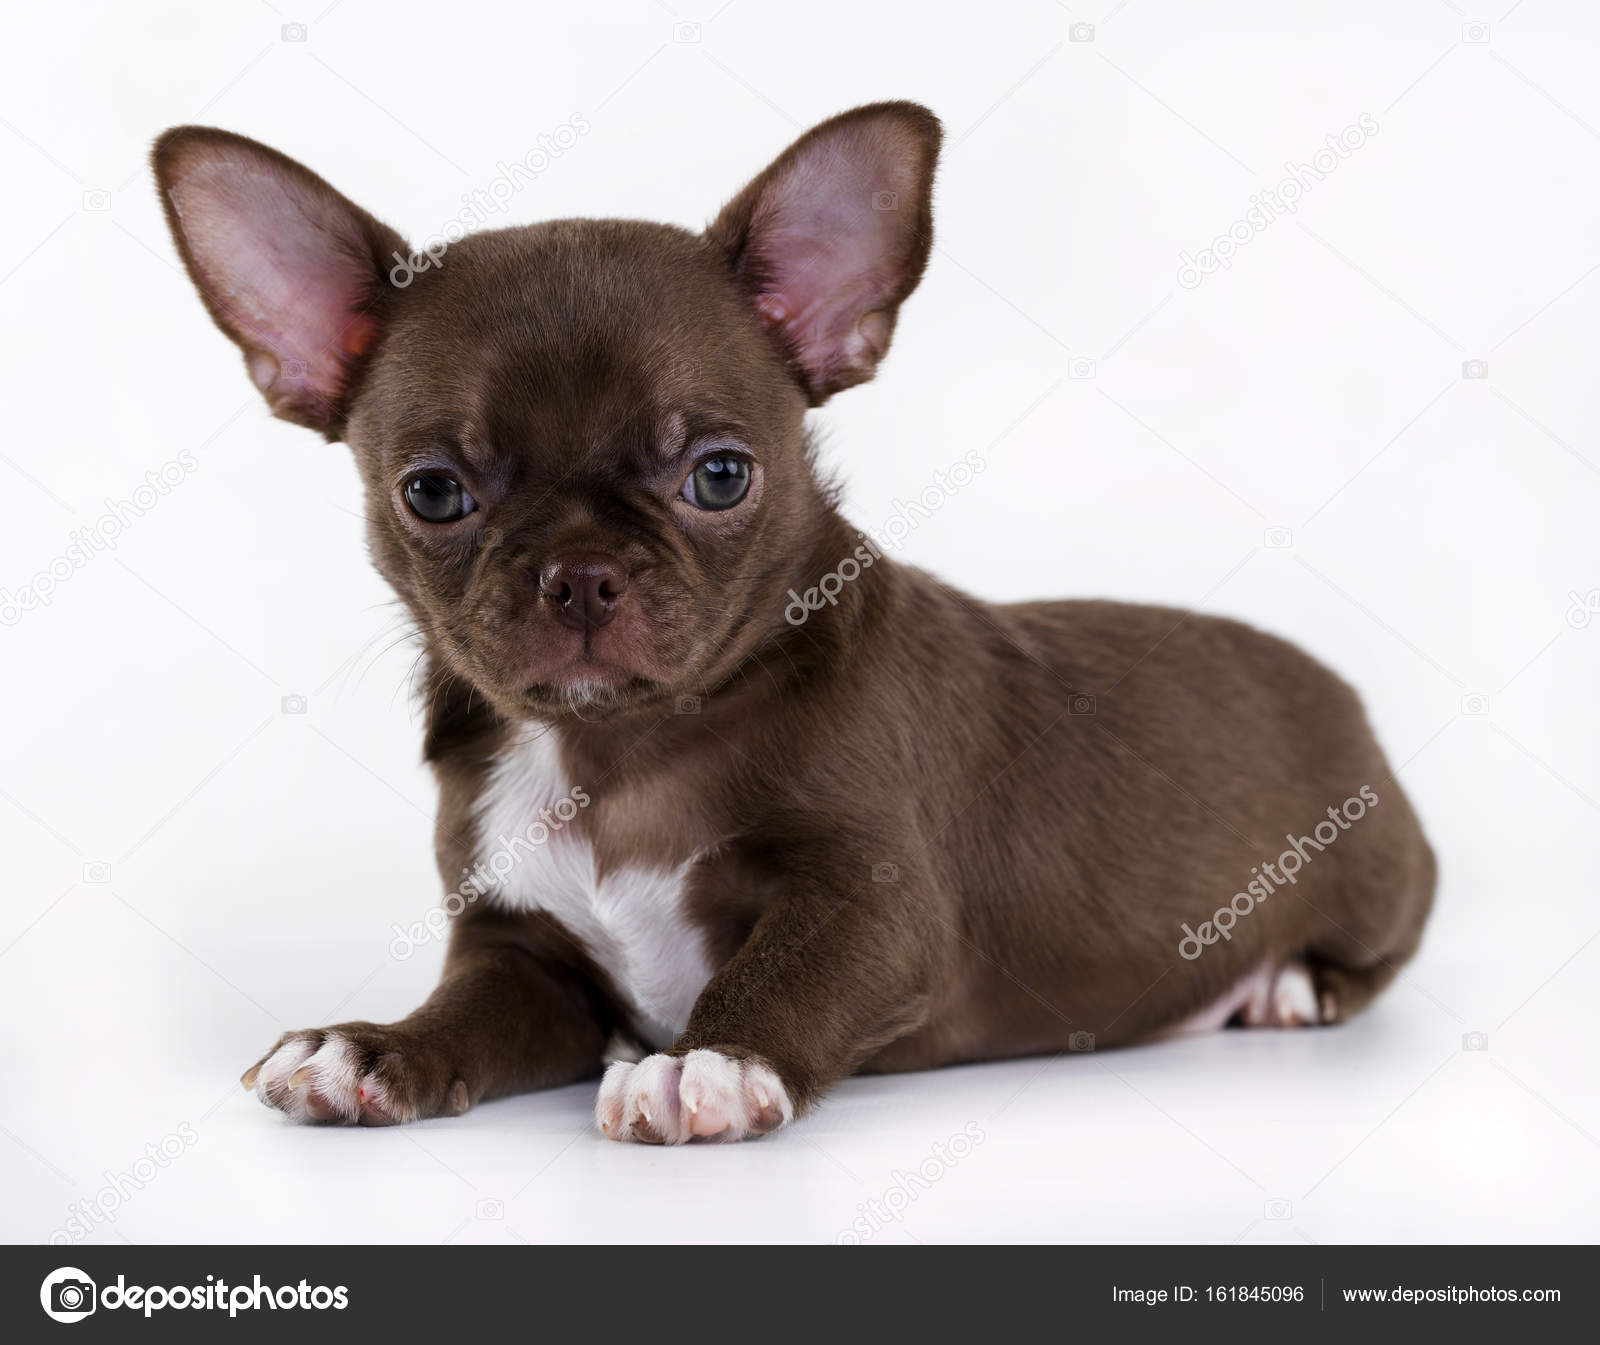 Brown And Tan Chihuahua Puppy Chihuahua Puppy Of Brown Color Stock Photo C Lilun Li 161845096